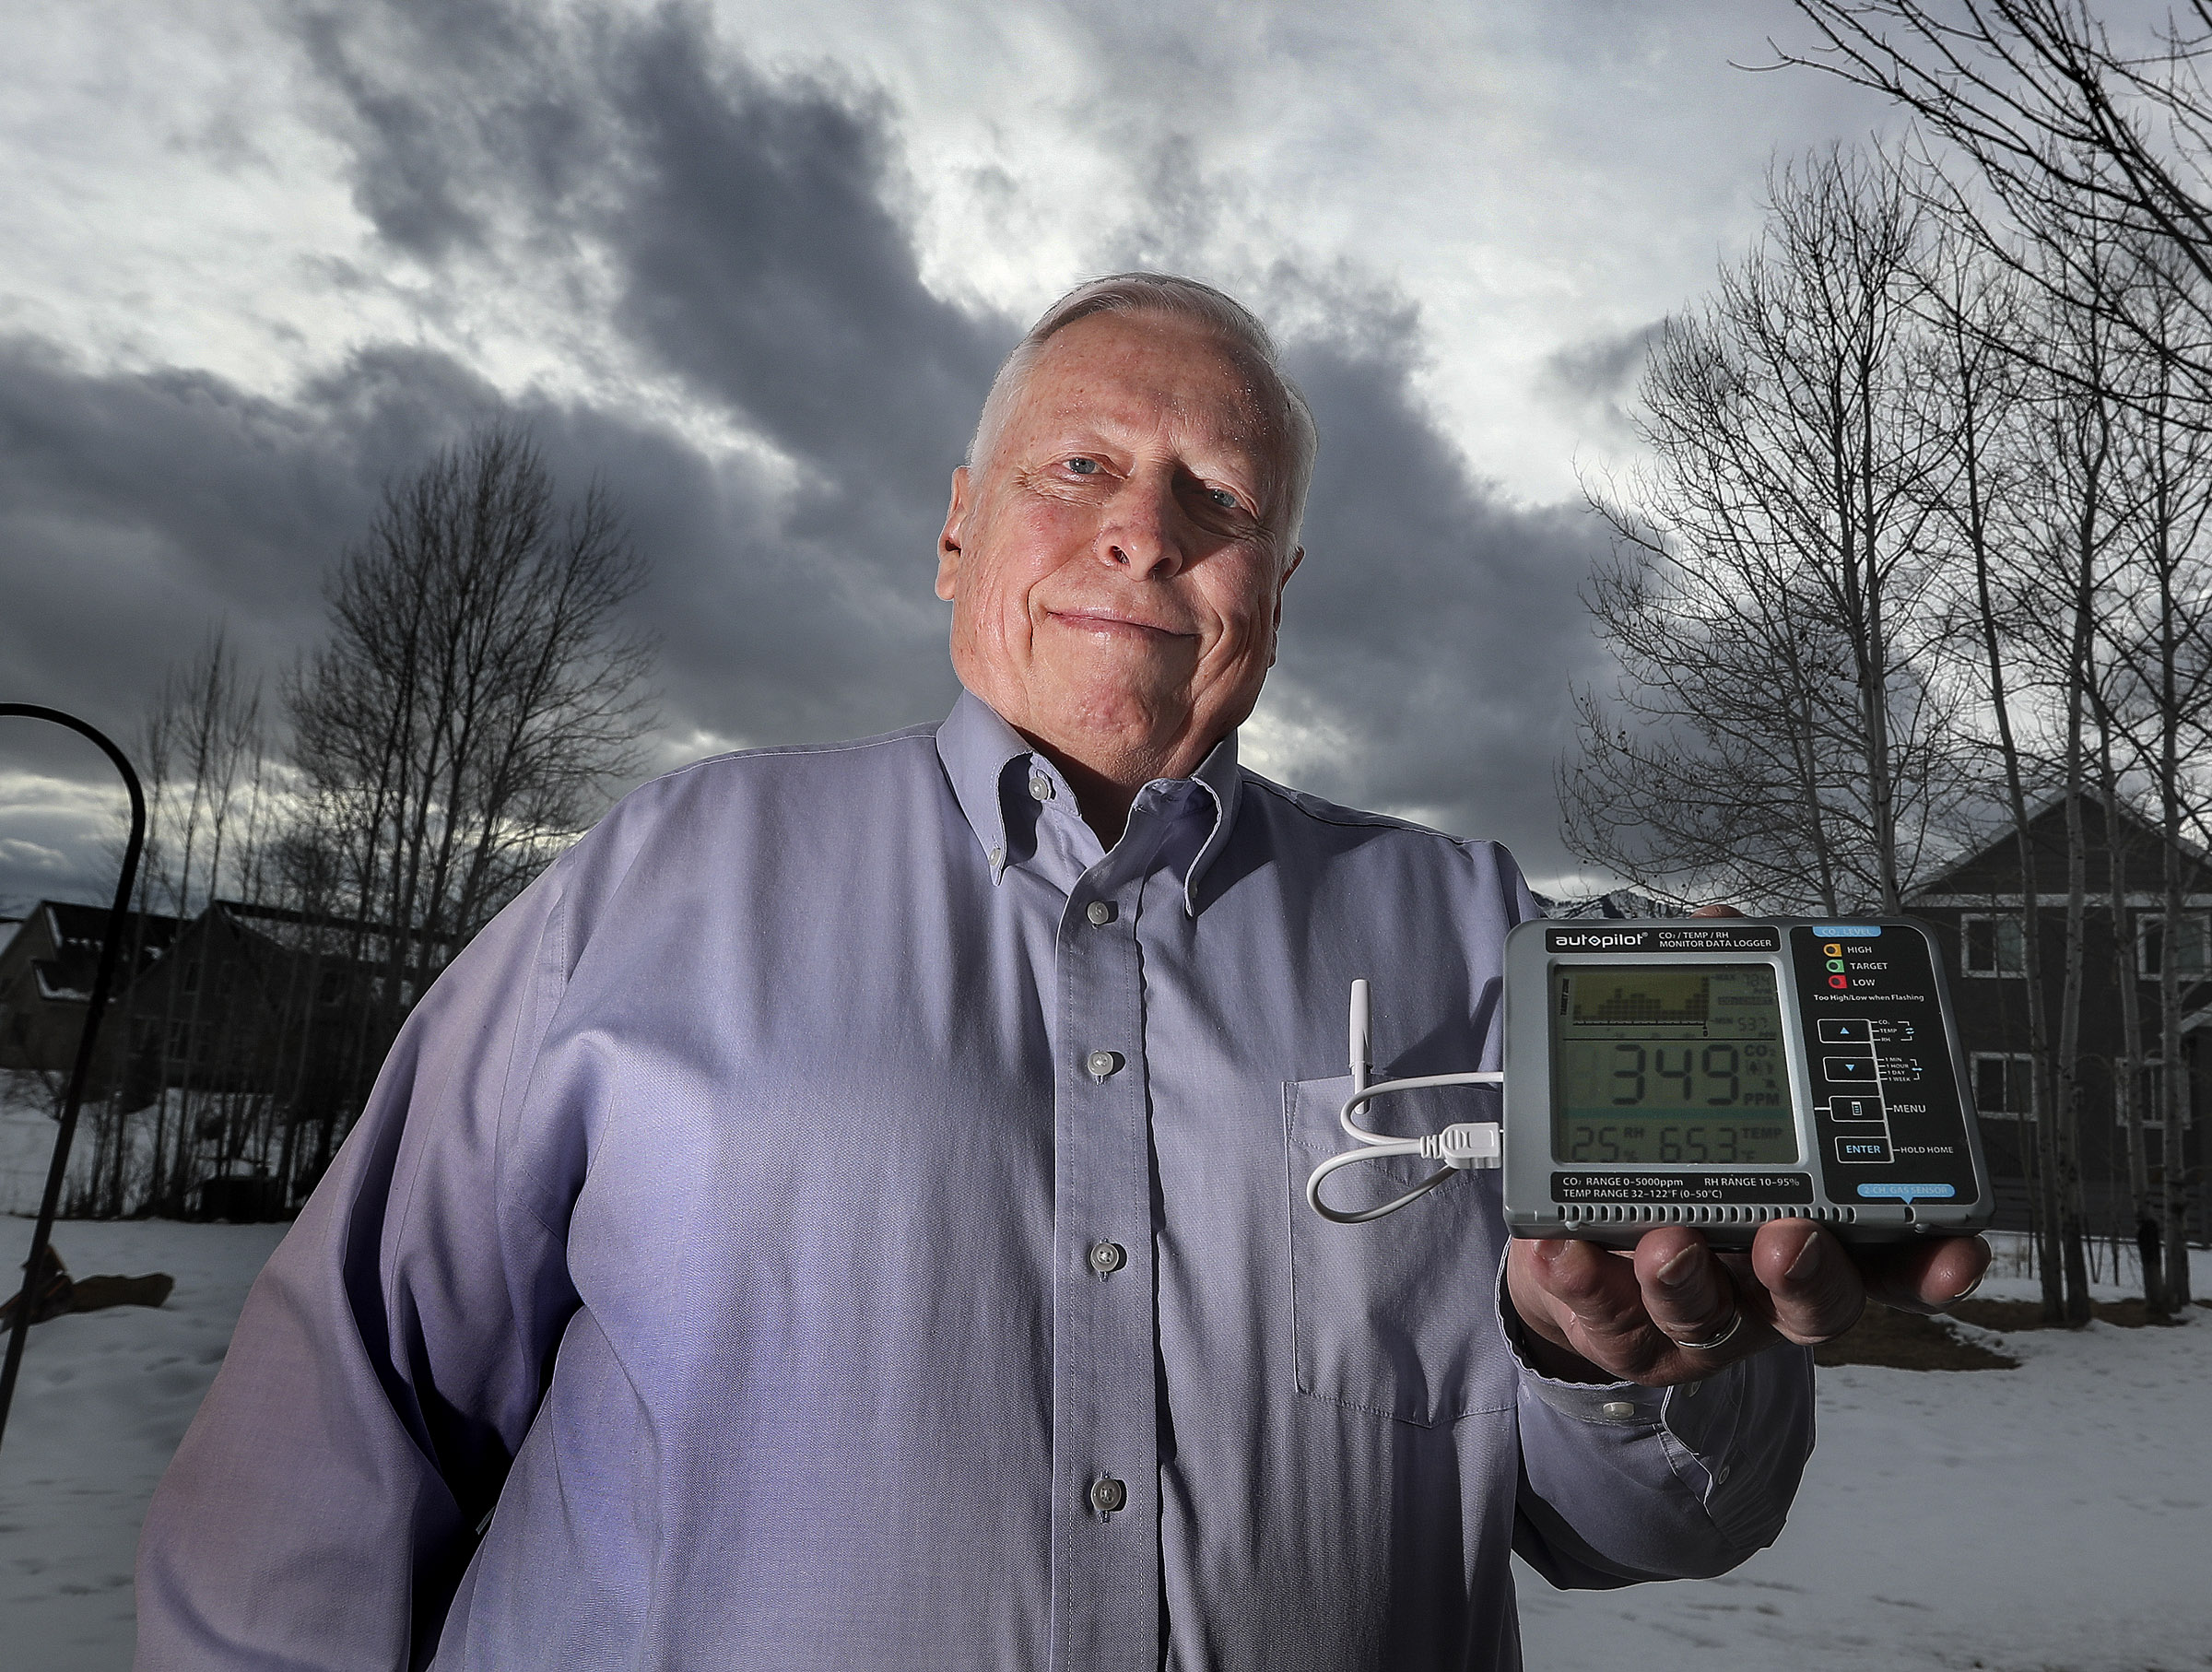 Bill Pekny poses for a photo as he uses a monitor to check carbon dioxide levels outside of his home in Midway on Tuesday, Feb. 2, 2021. Pekny is a local author and scientist and agrees the climate is warming, but he says that we are in a normal cycle of warming and panic is unwarranted.